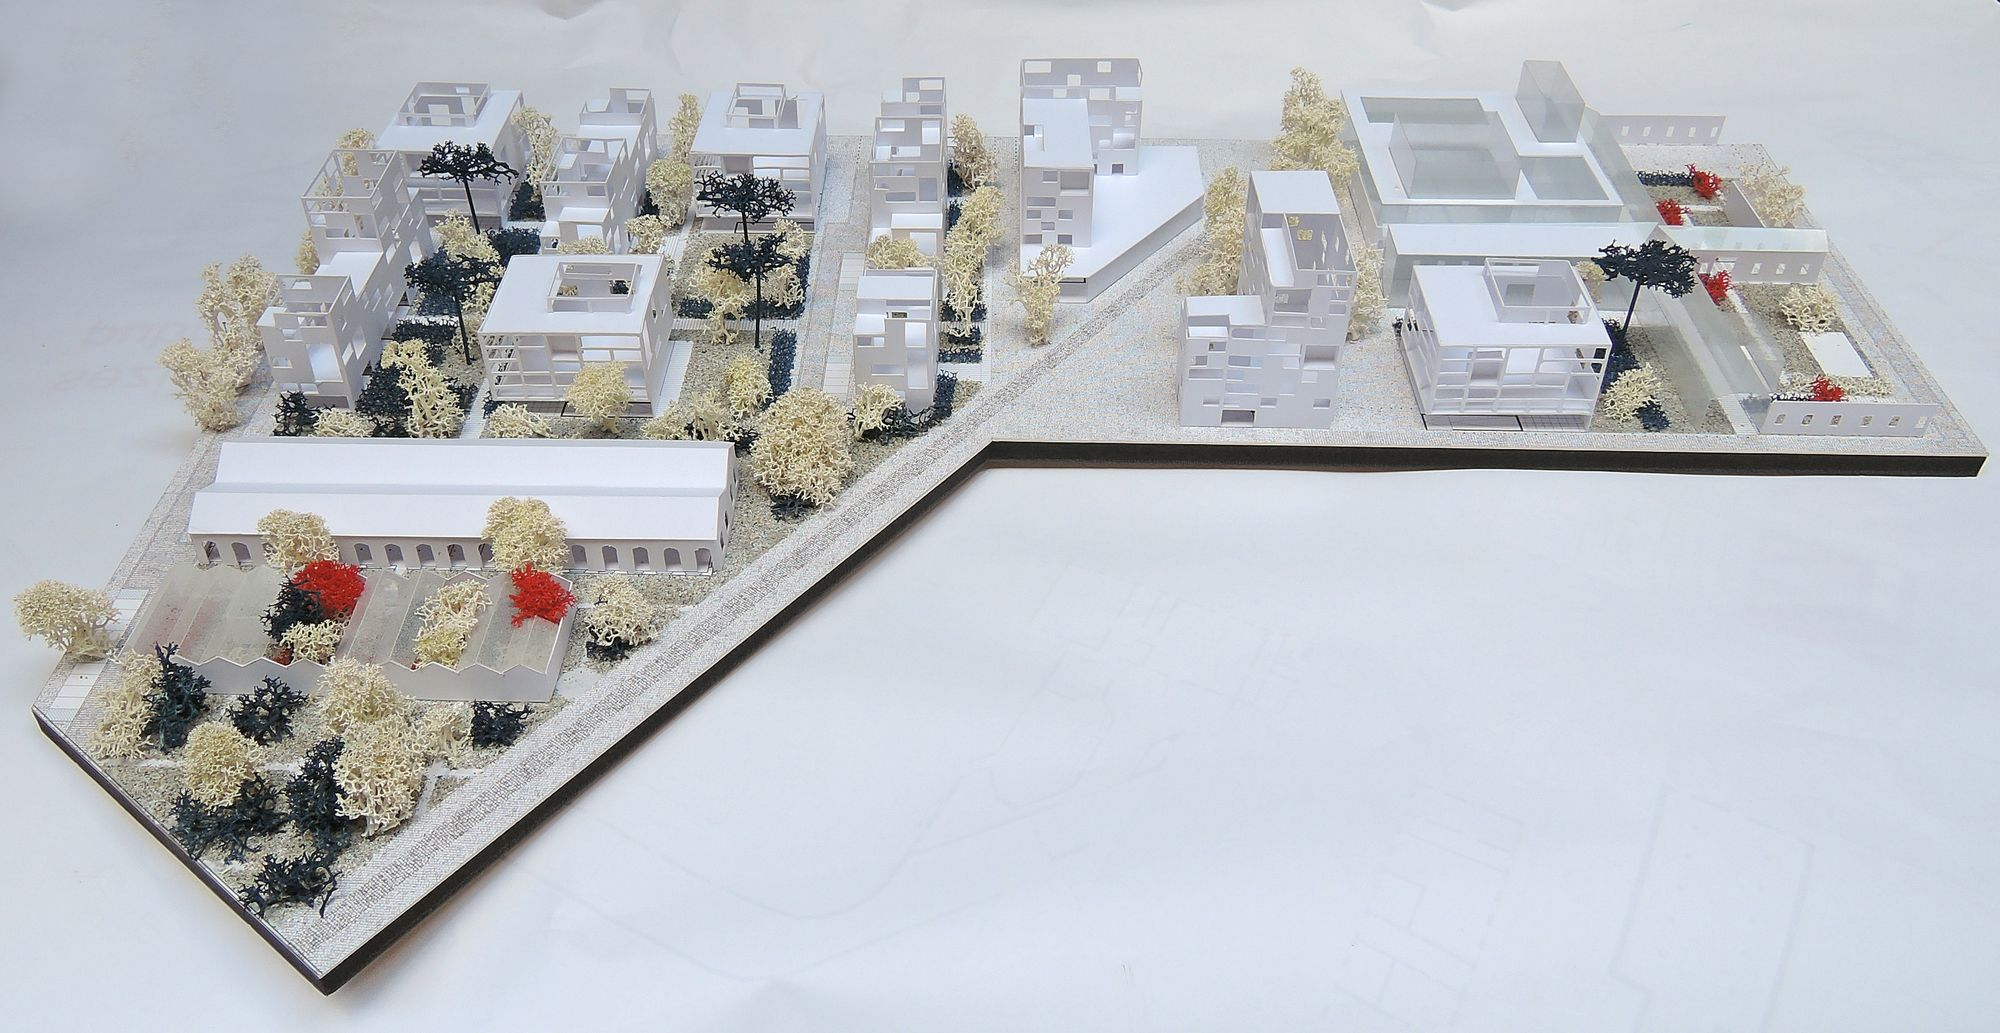 Gallery - Studio 015 Paola Viganò Wins Competition to Masterplan Rome's Progetto Flaminio District - 8